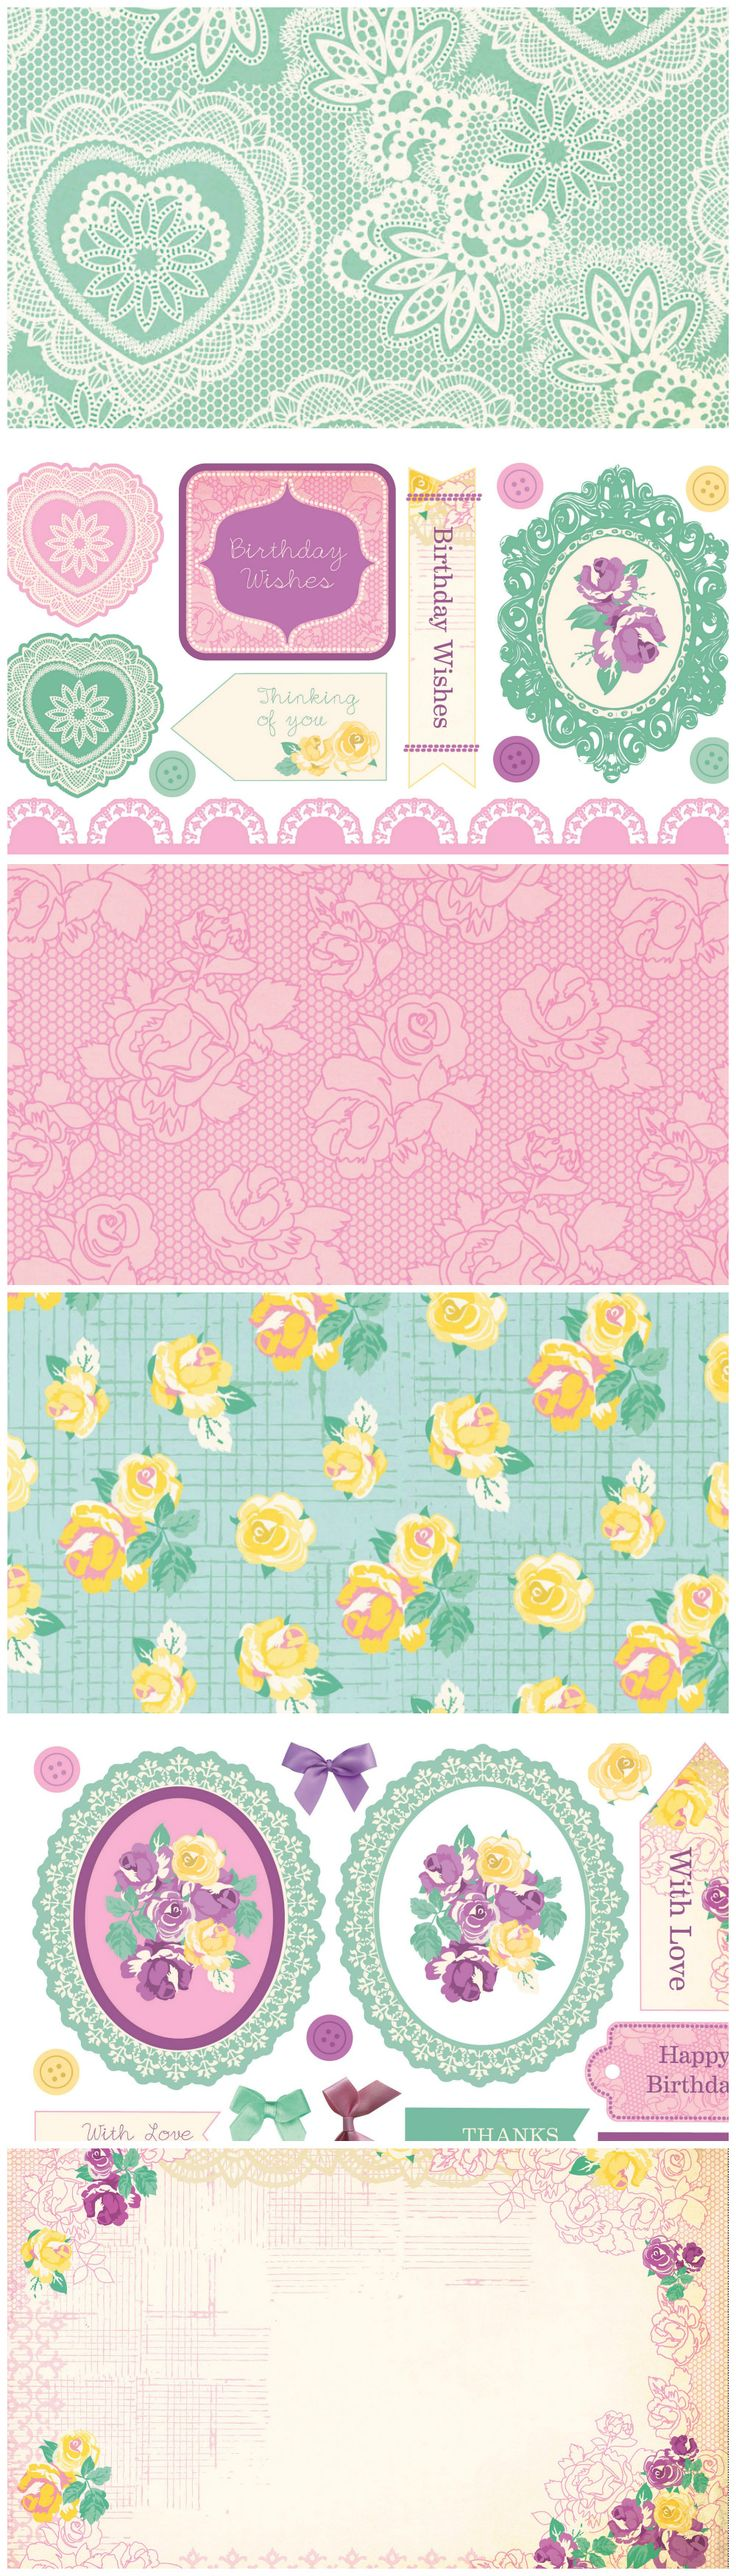 Scrapbook paper lace - Go For A Glorious Vintage Look With These Stunning Free Printable Papers From